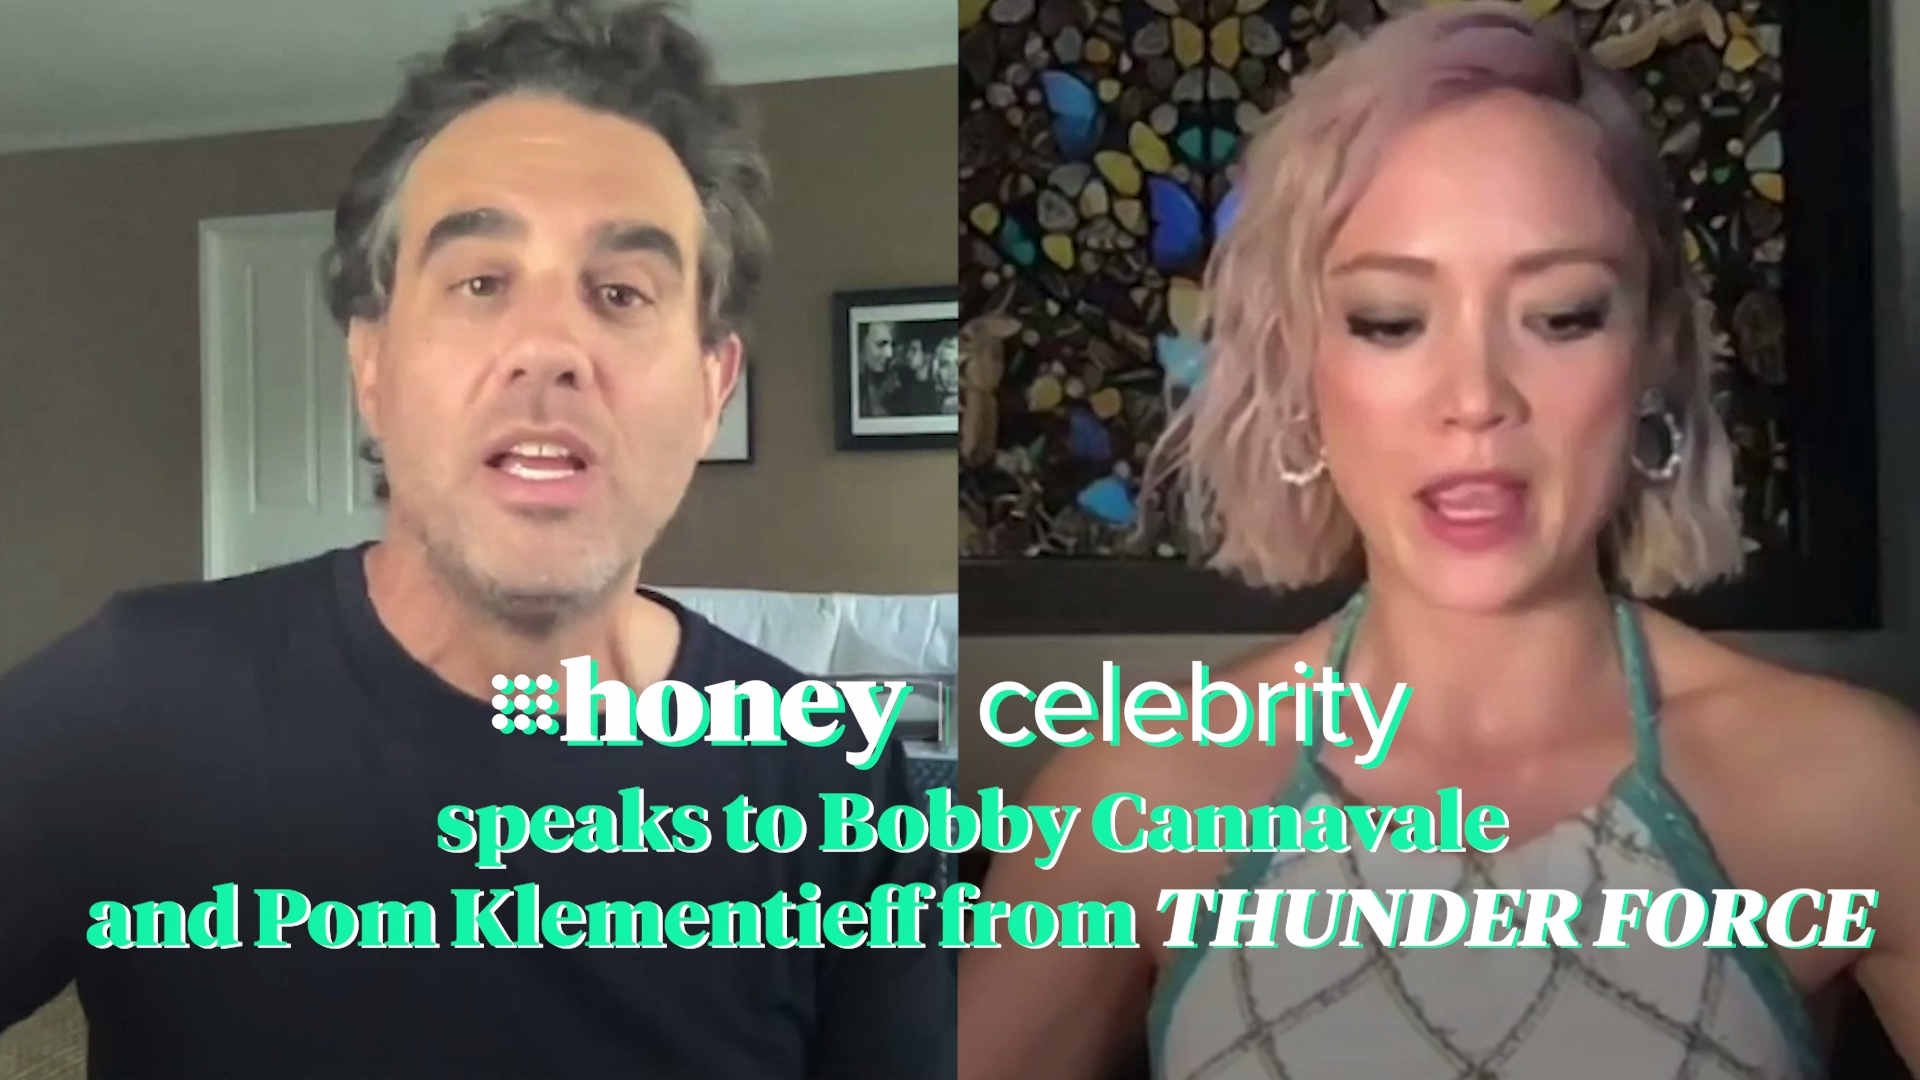 Bobby Cannavale and Pom Klementieff talk Thunder Force